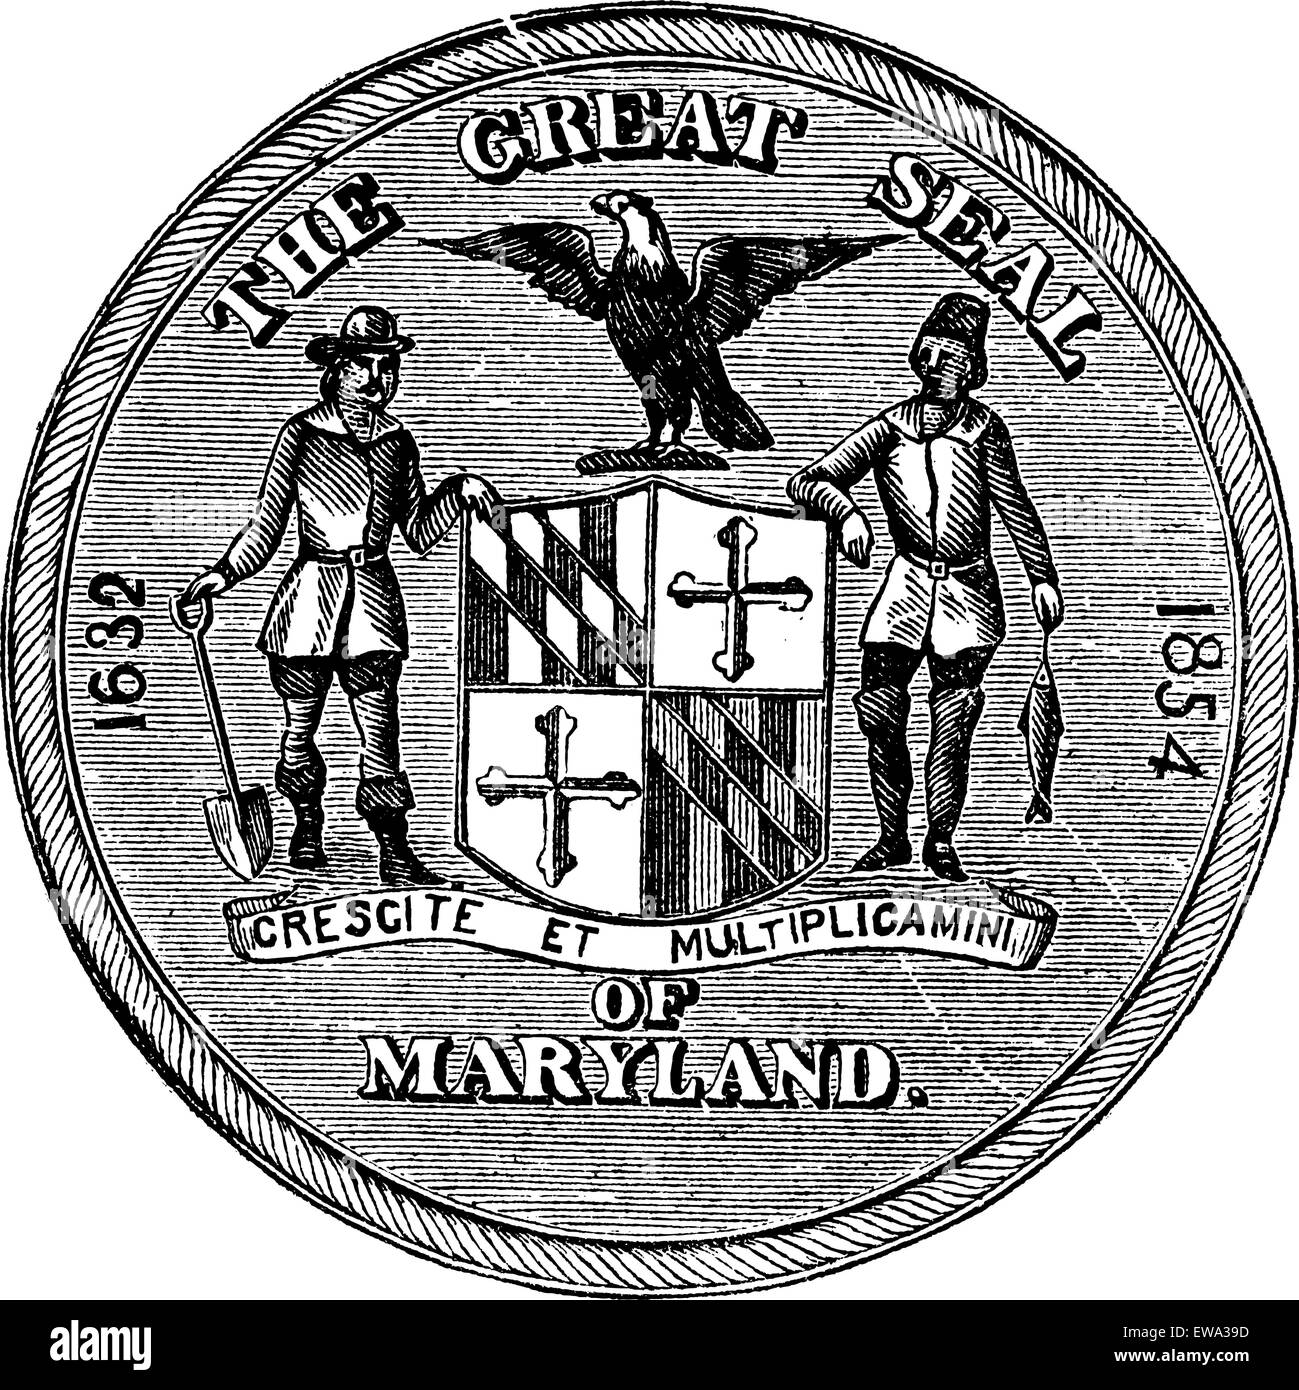 Great Seal of the State of Maryland, United States, vintage engraving. Old engraved illustration of Great Seal of - Stock Image